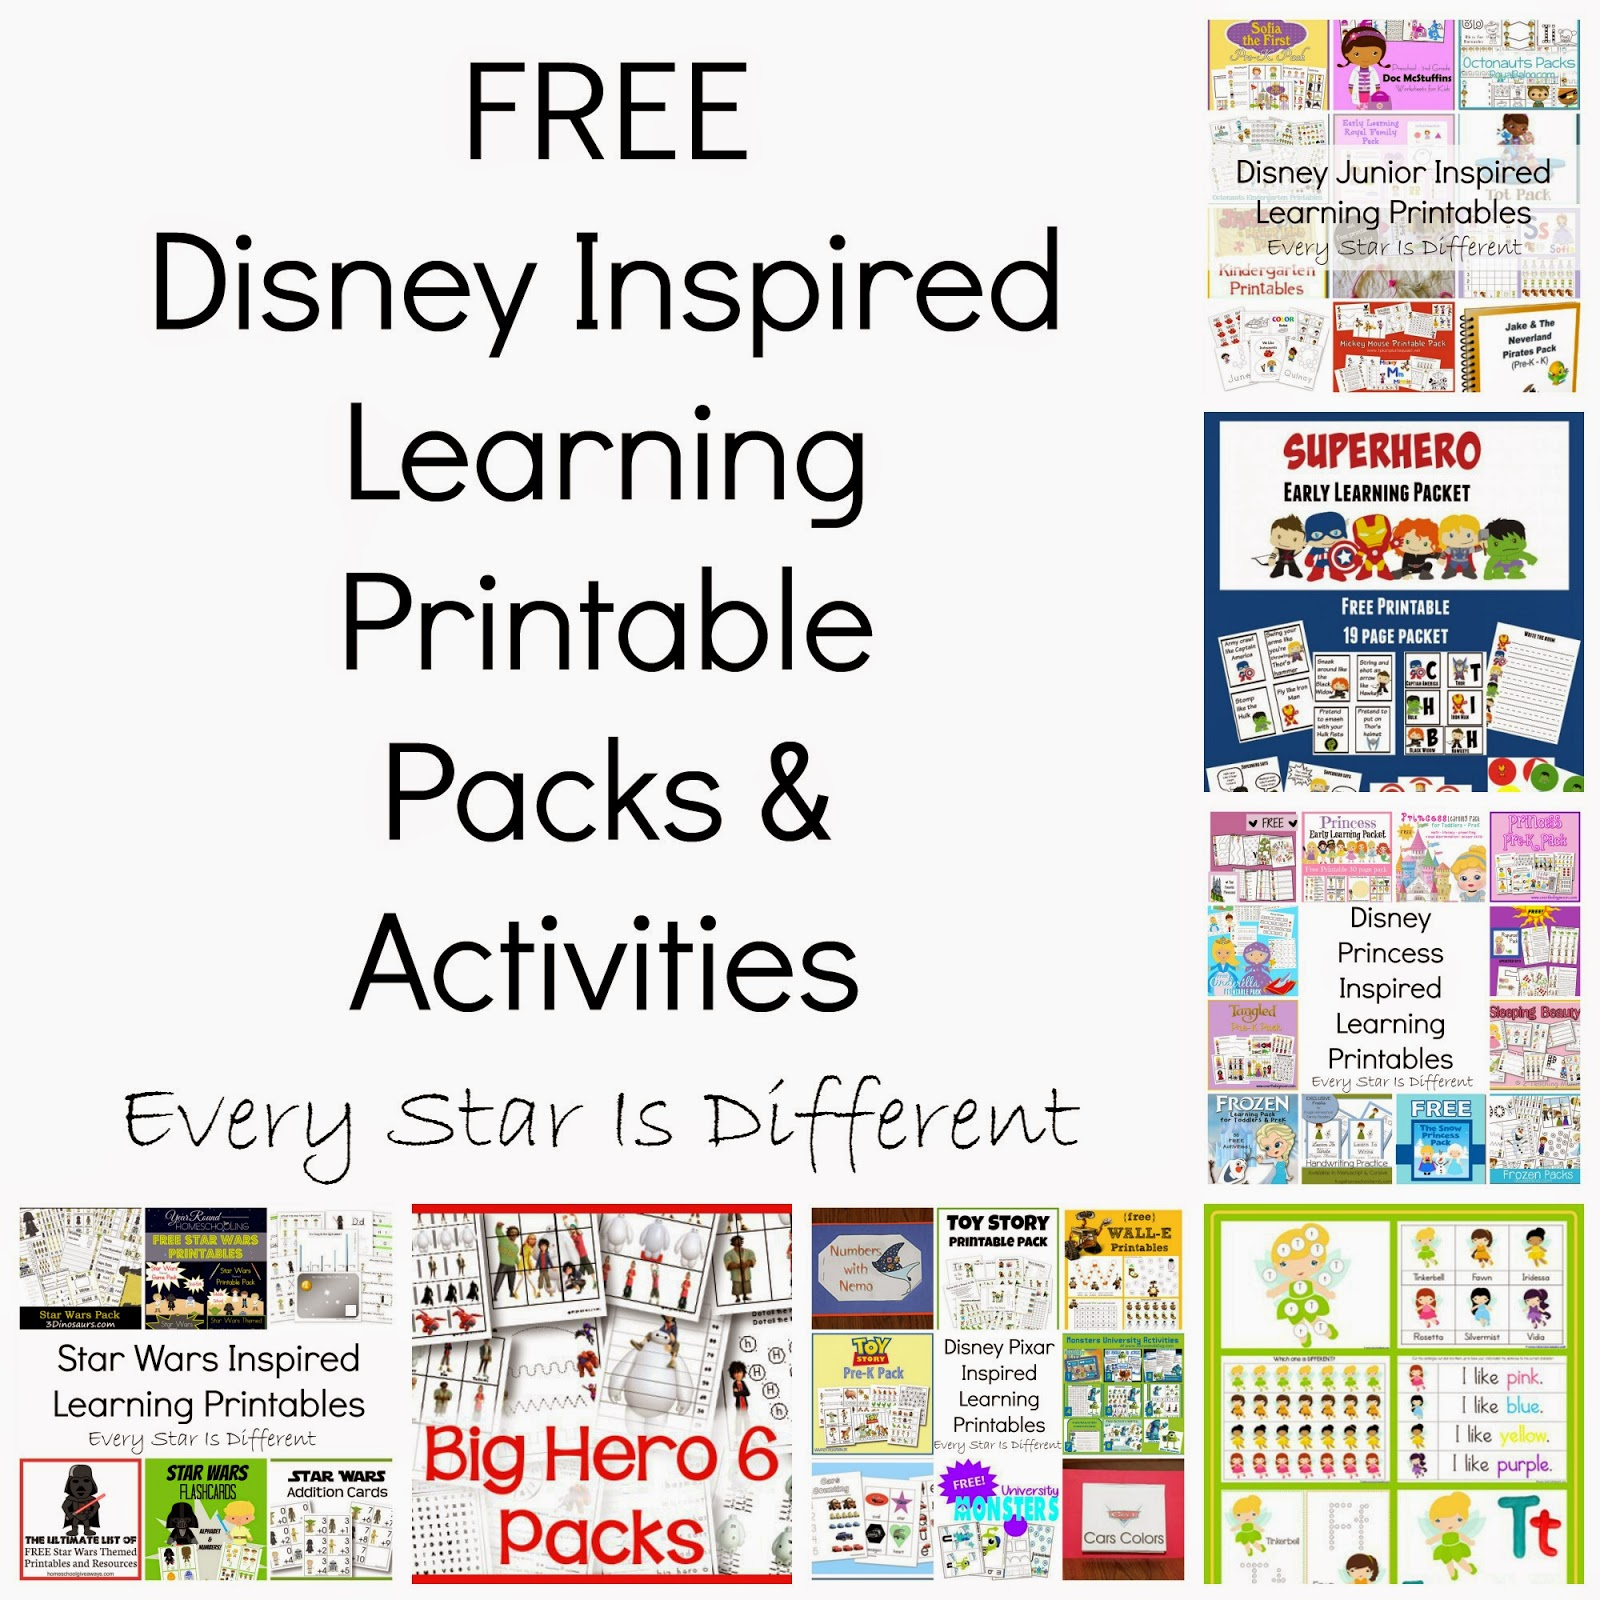 this is by no means a complete list i promise if youre in search of frozen or star wars printables you can spend an entire day looking at all thats out